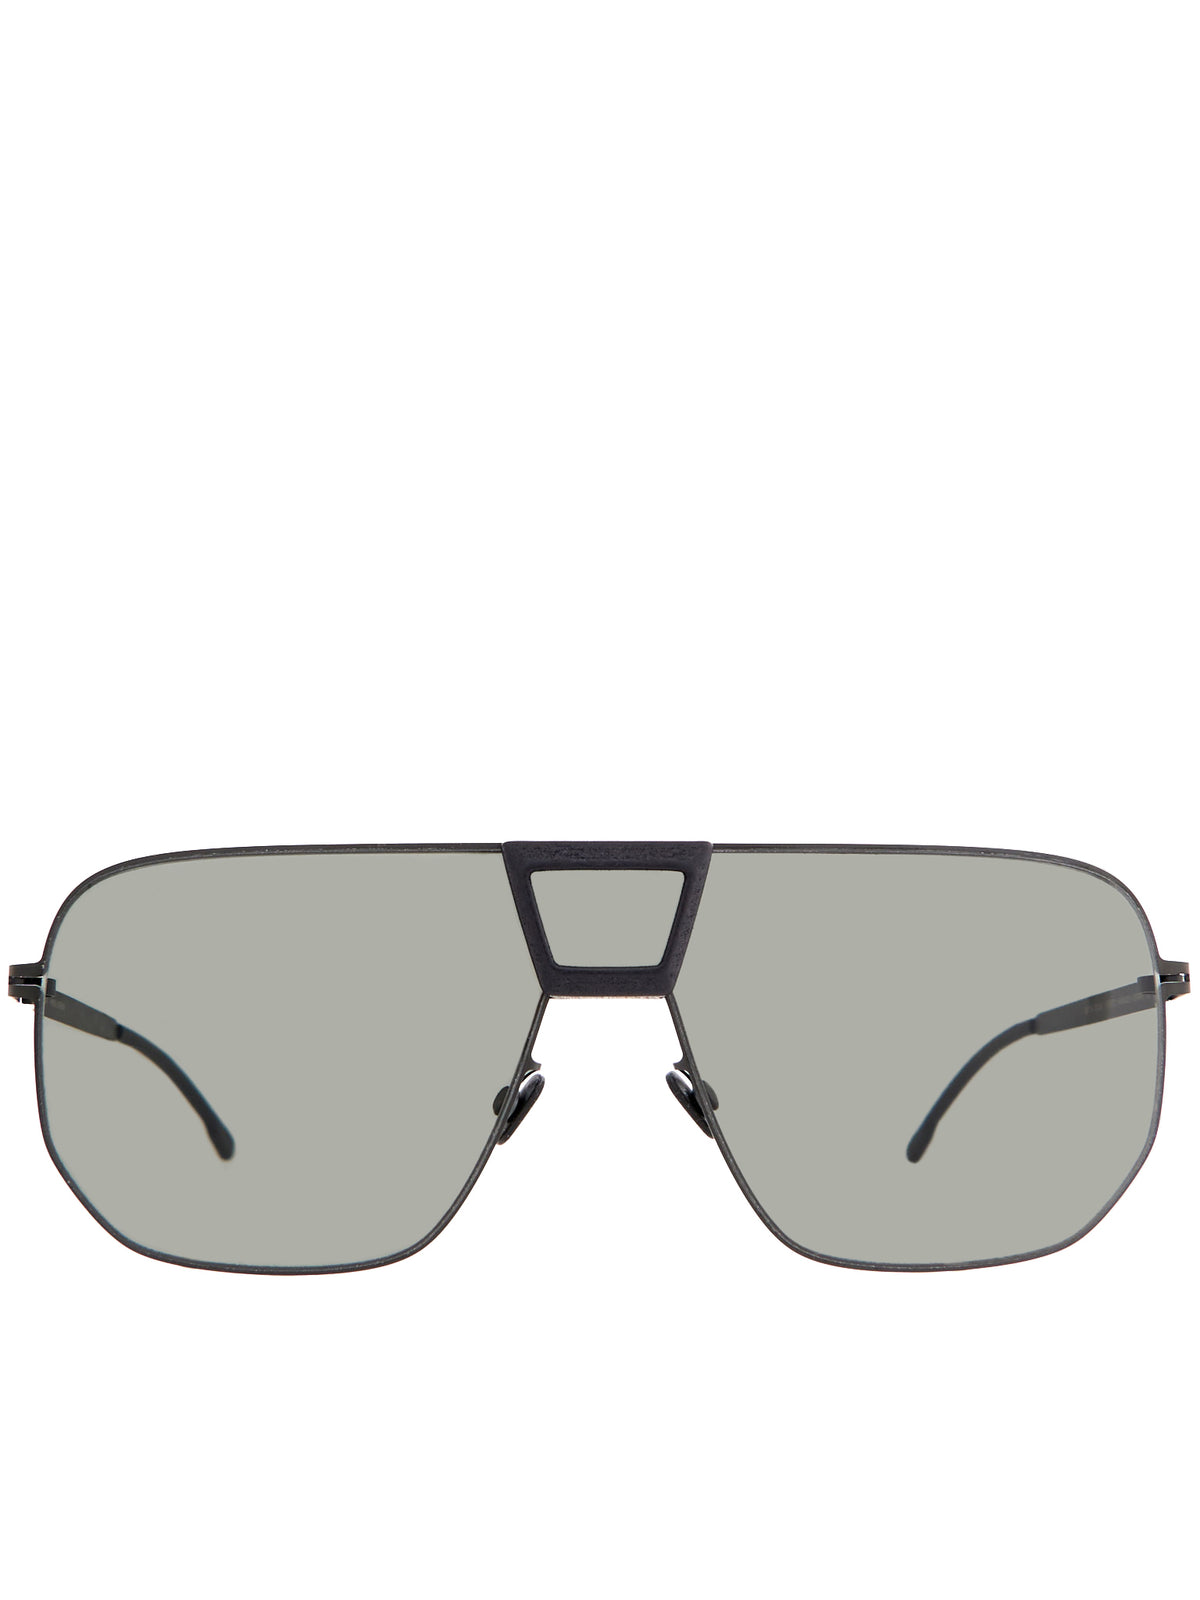 'Cayenne' Sunglasses (CAYENNE-PITCH-BLACK-DARK-GREY)